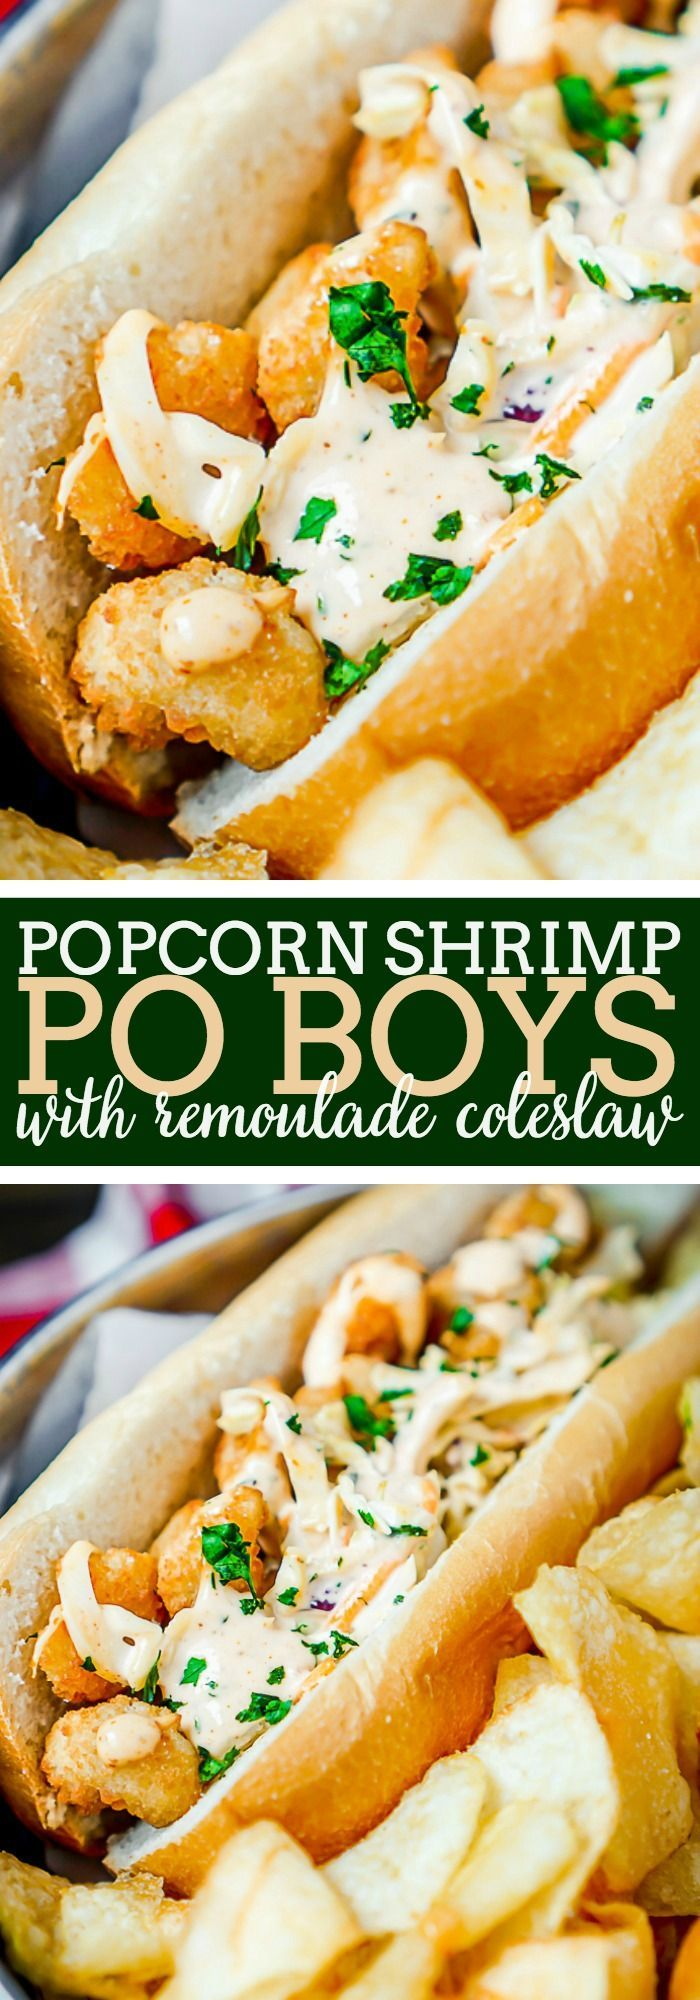 Popcorn Shrimp Po Boys Recipe with Remoulade Coleslaw - {Msg 4 21+} Easy dinner twist on classic New Orleans' sandwich recipe. Ready in 10 minutes with tons of flavor! | The Love Nerds  via @lovenerdmaggie